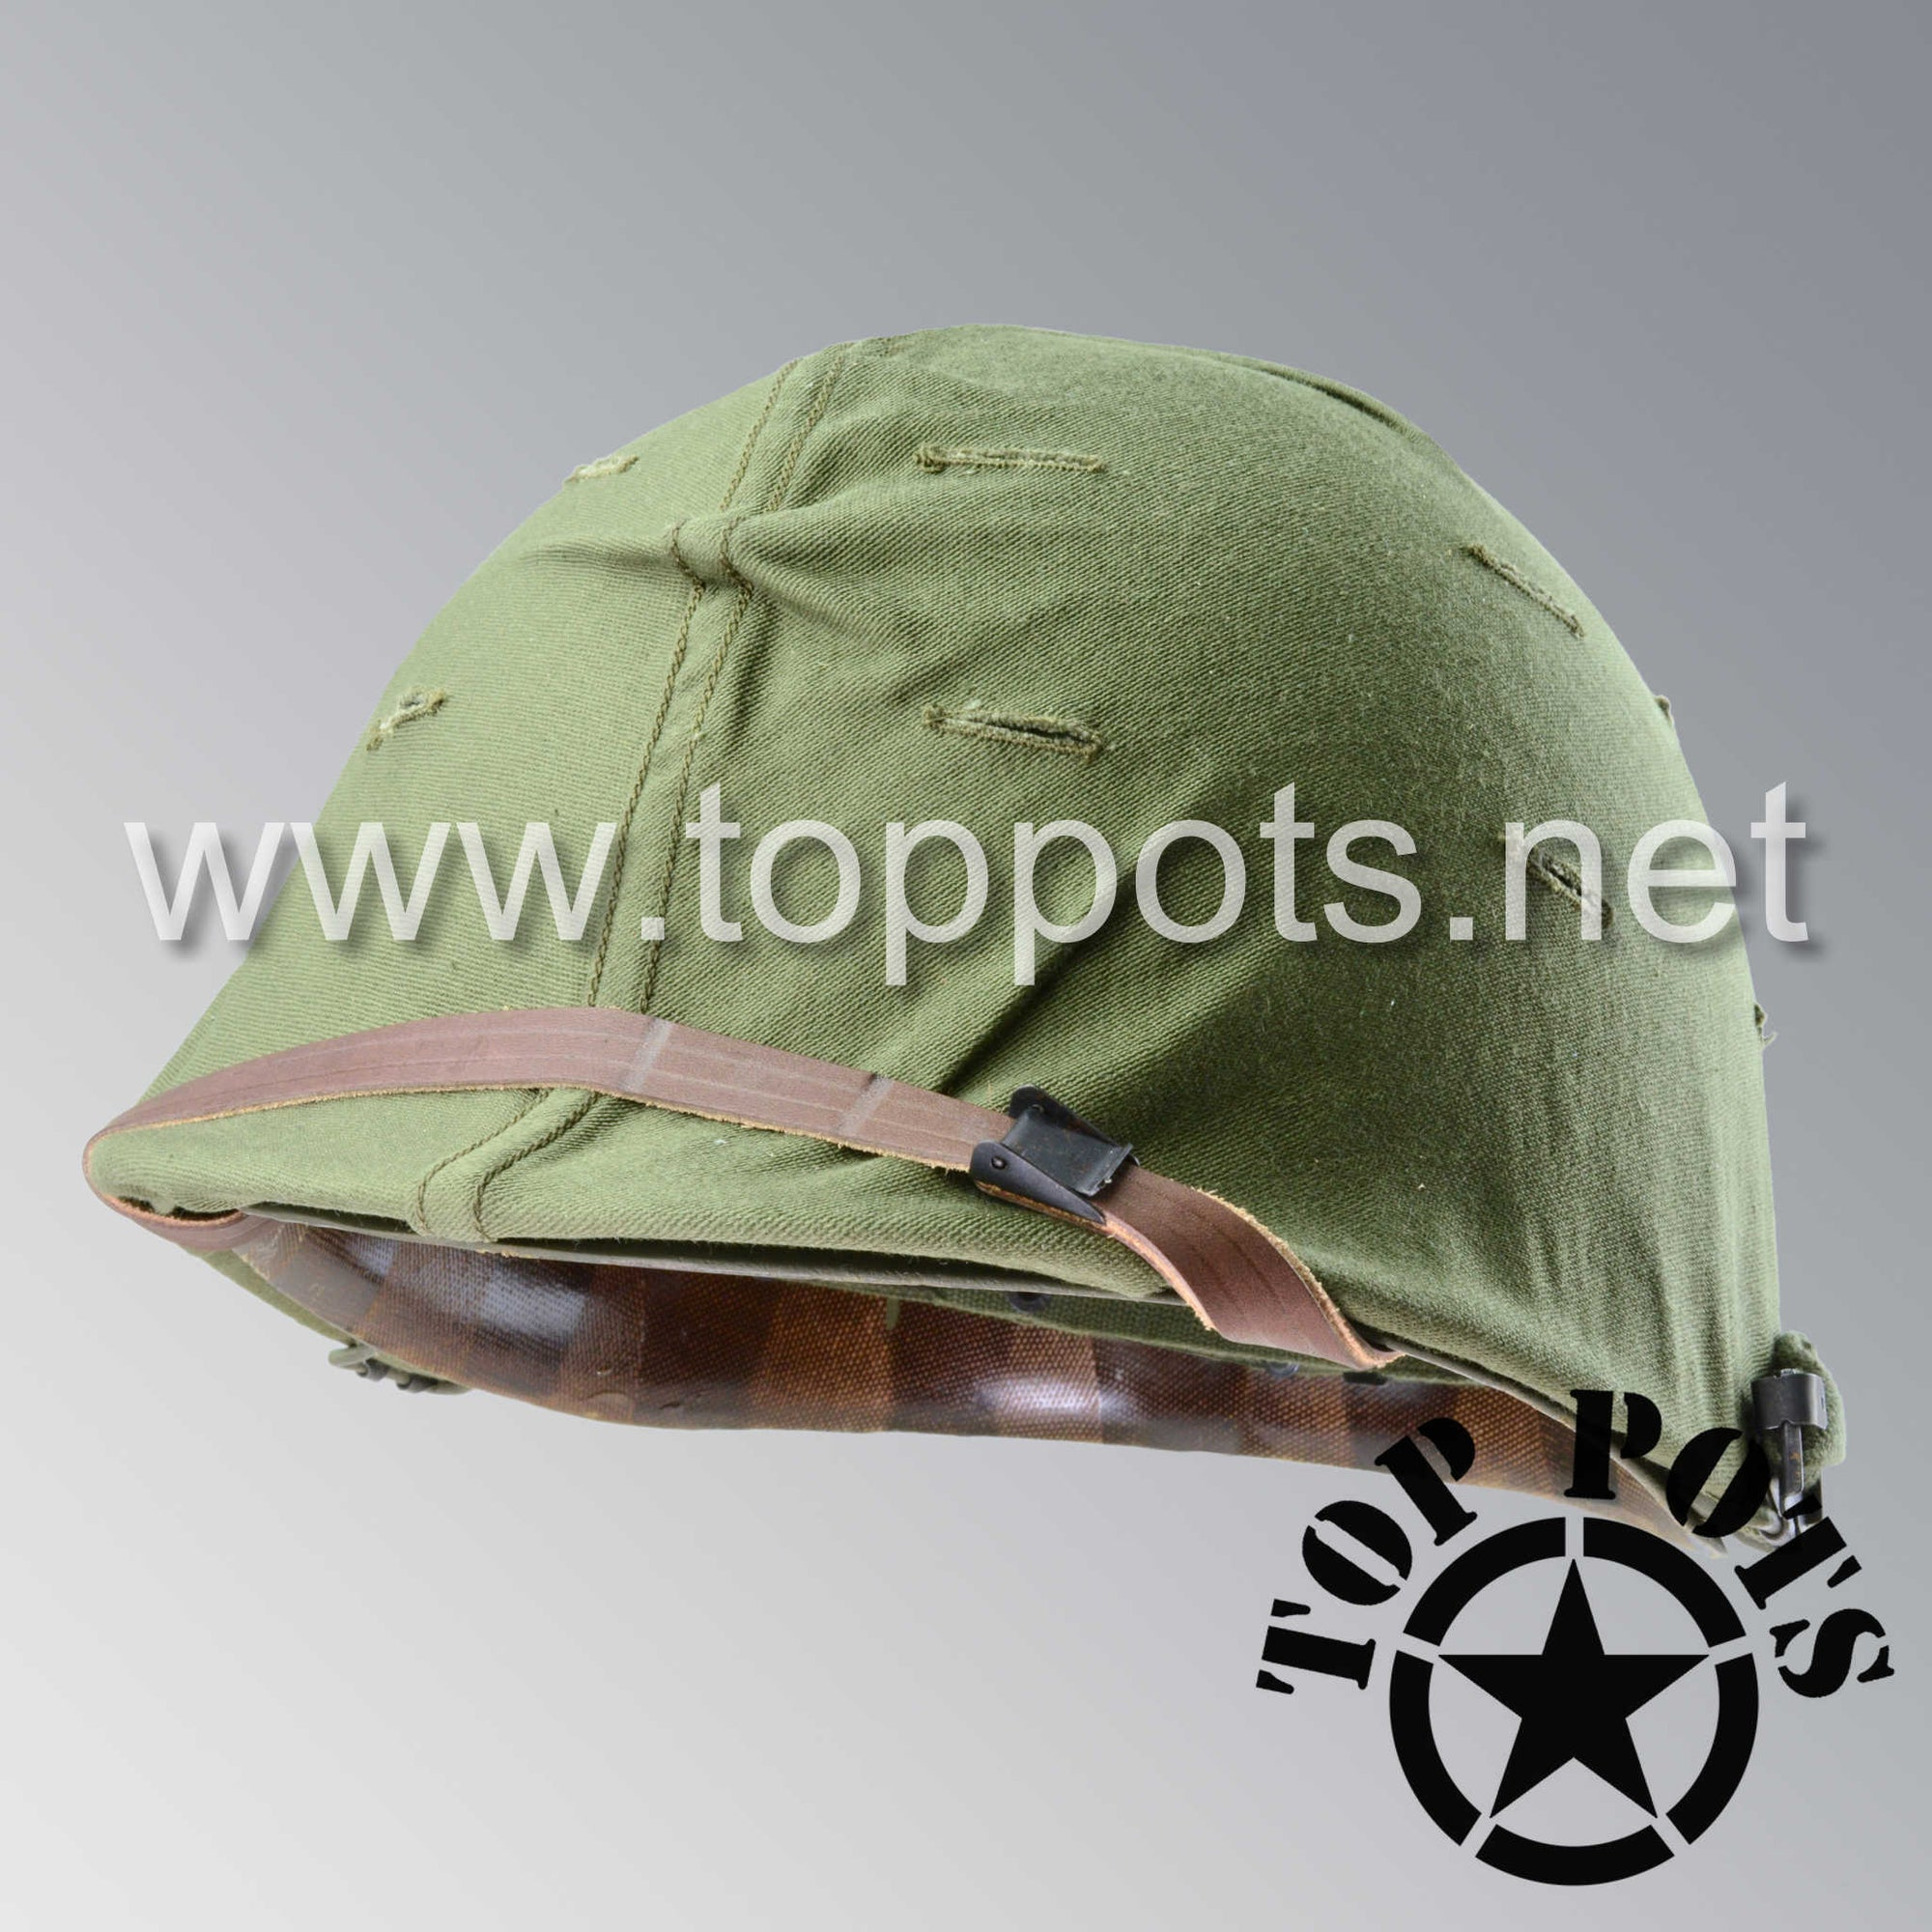 Image 1 of Vietnam War US Army Original M1 Infantry Helmet Swivel Bale Shell and P55 Liner with Early War Olive Drab Cover